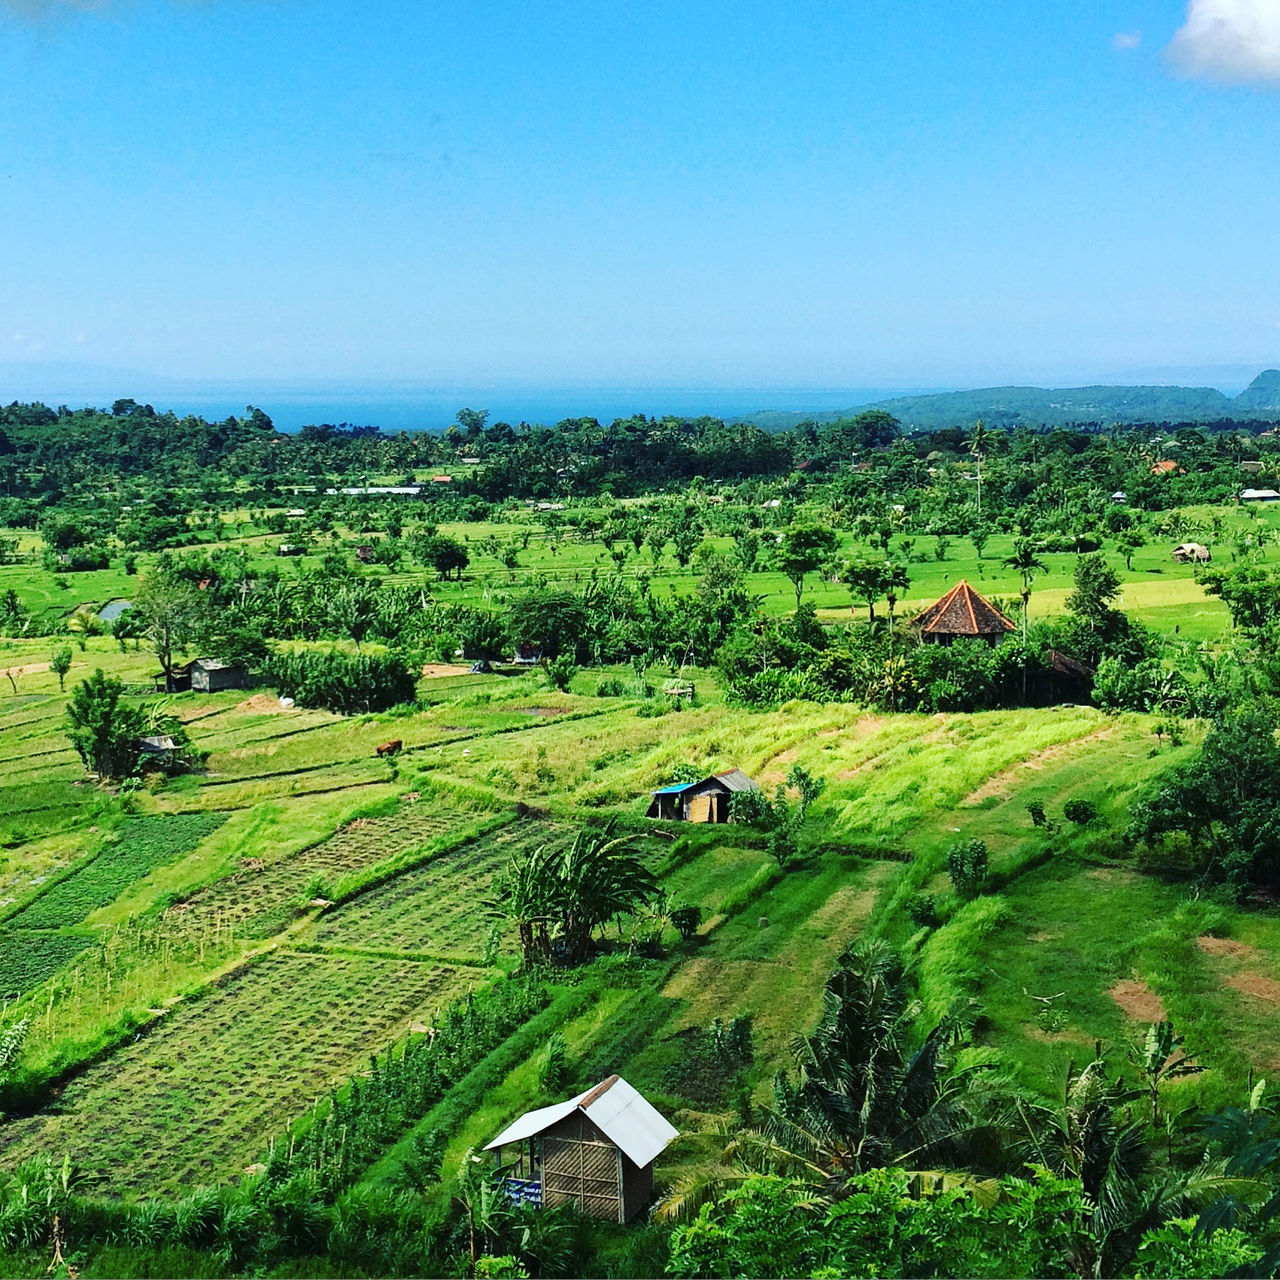 Bali landscape Bali Bali, Indonesia Beauty In Nature Day Field Grass Green Color Idyllic Landscape Nature No People Outdoors Rice Field Rural Scene Viewpoint